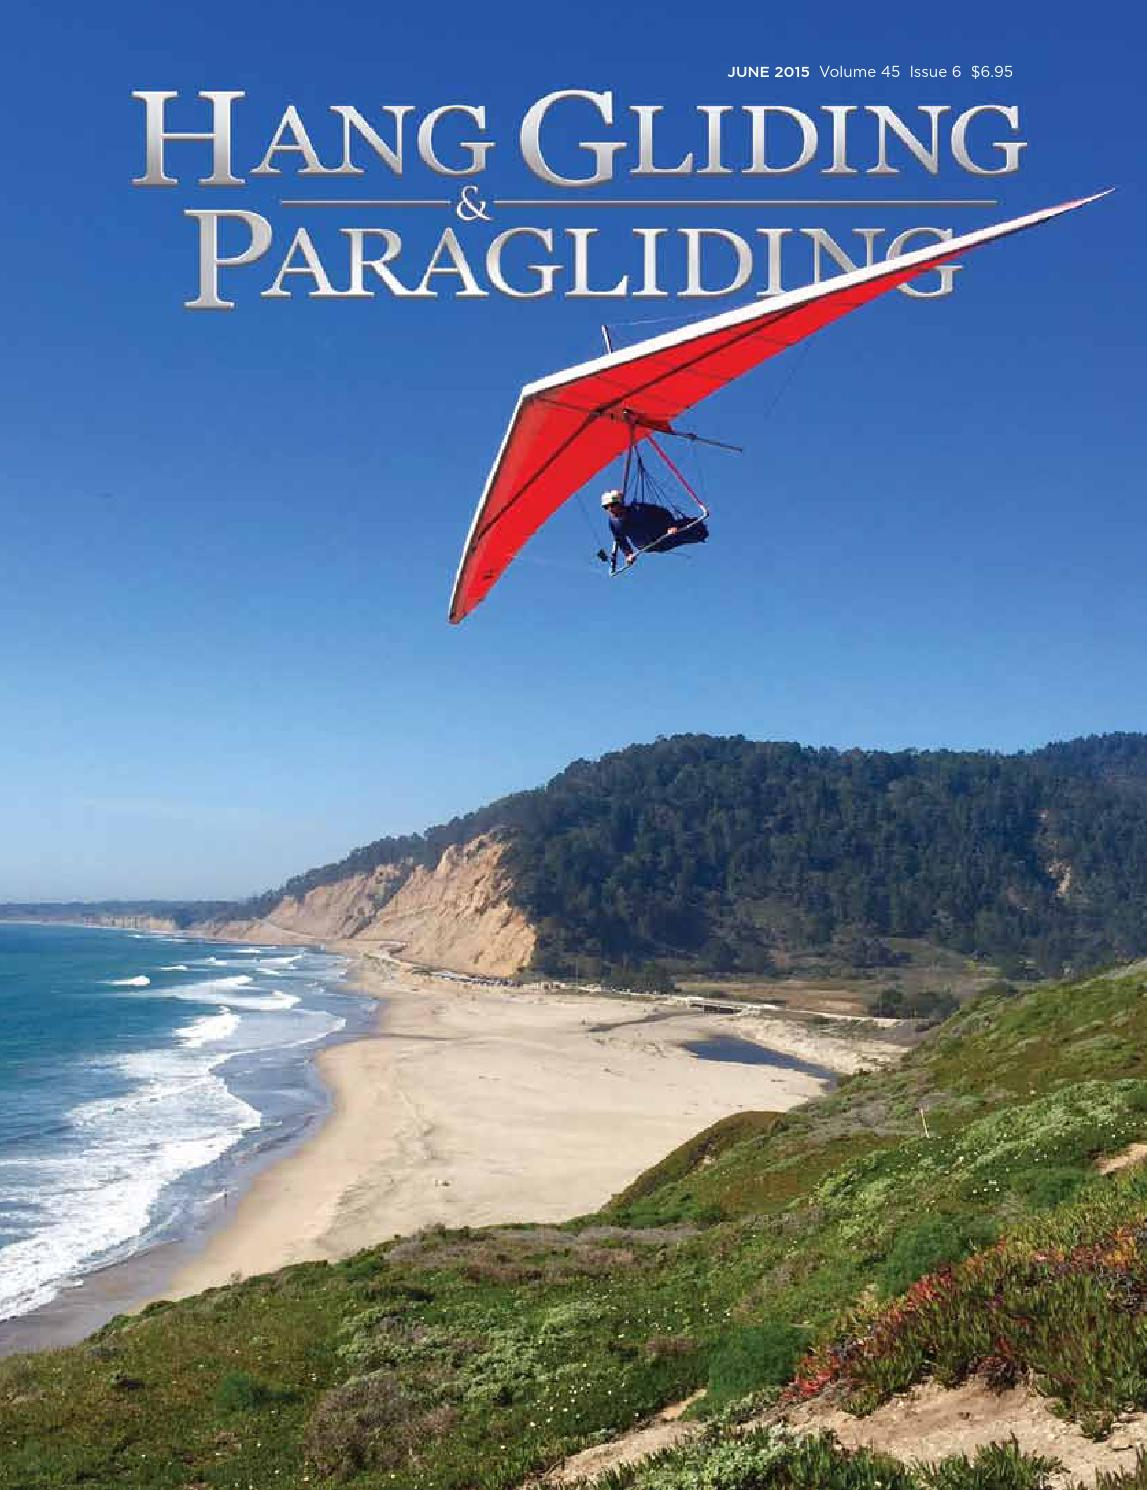 We make a classic hang glider with our own hands